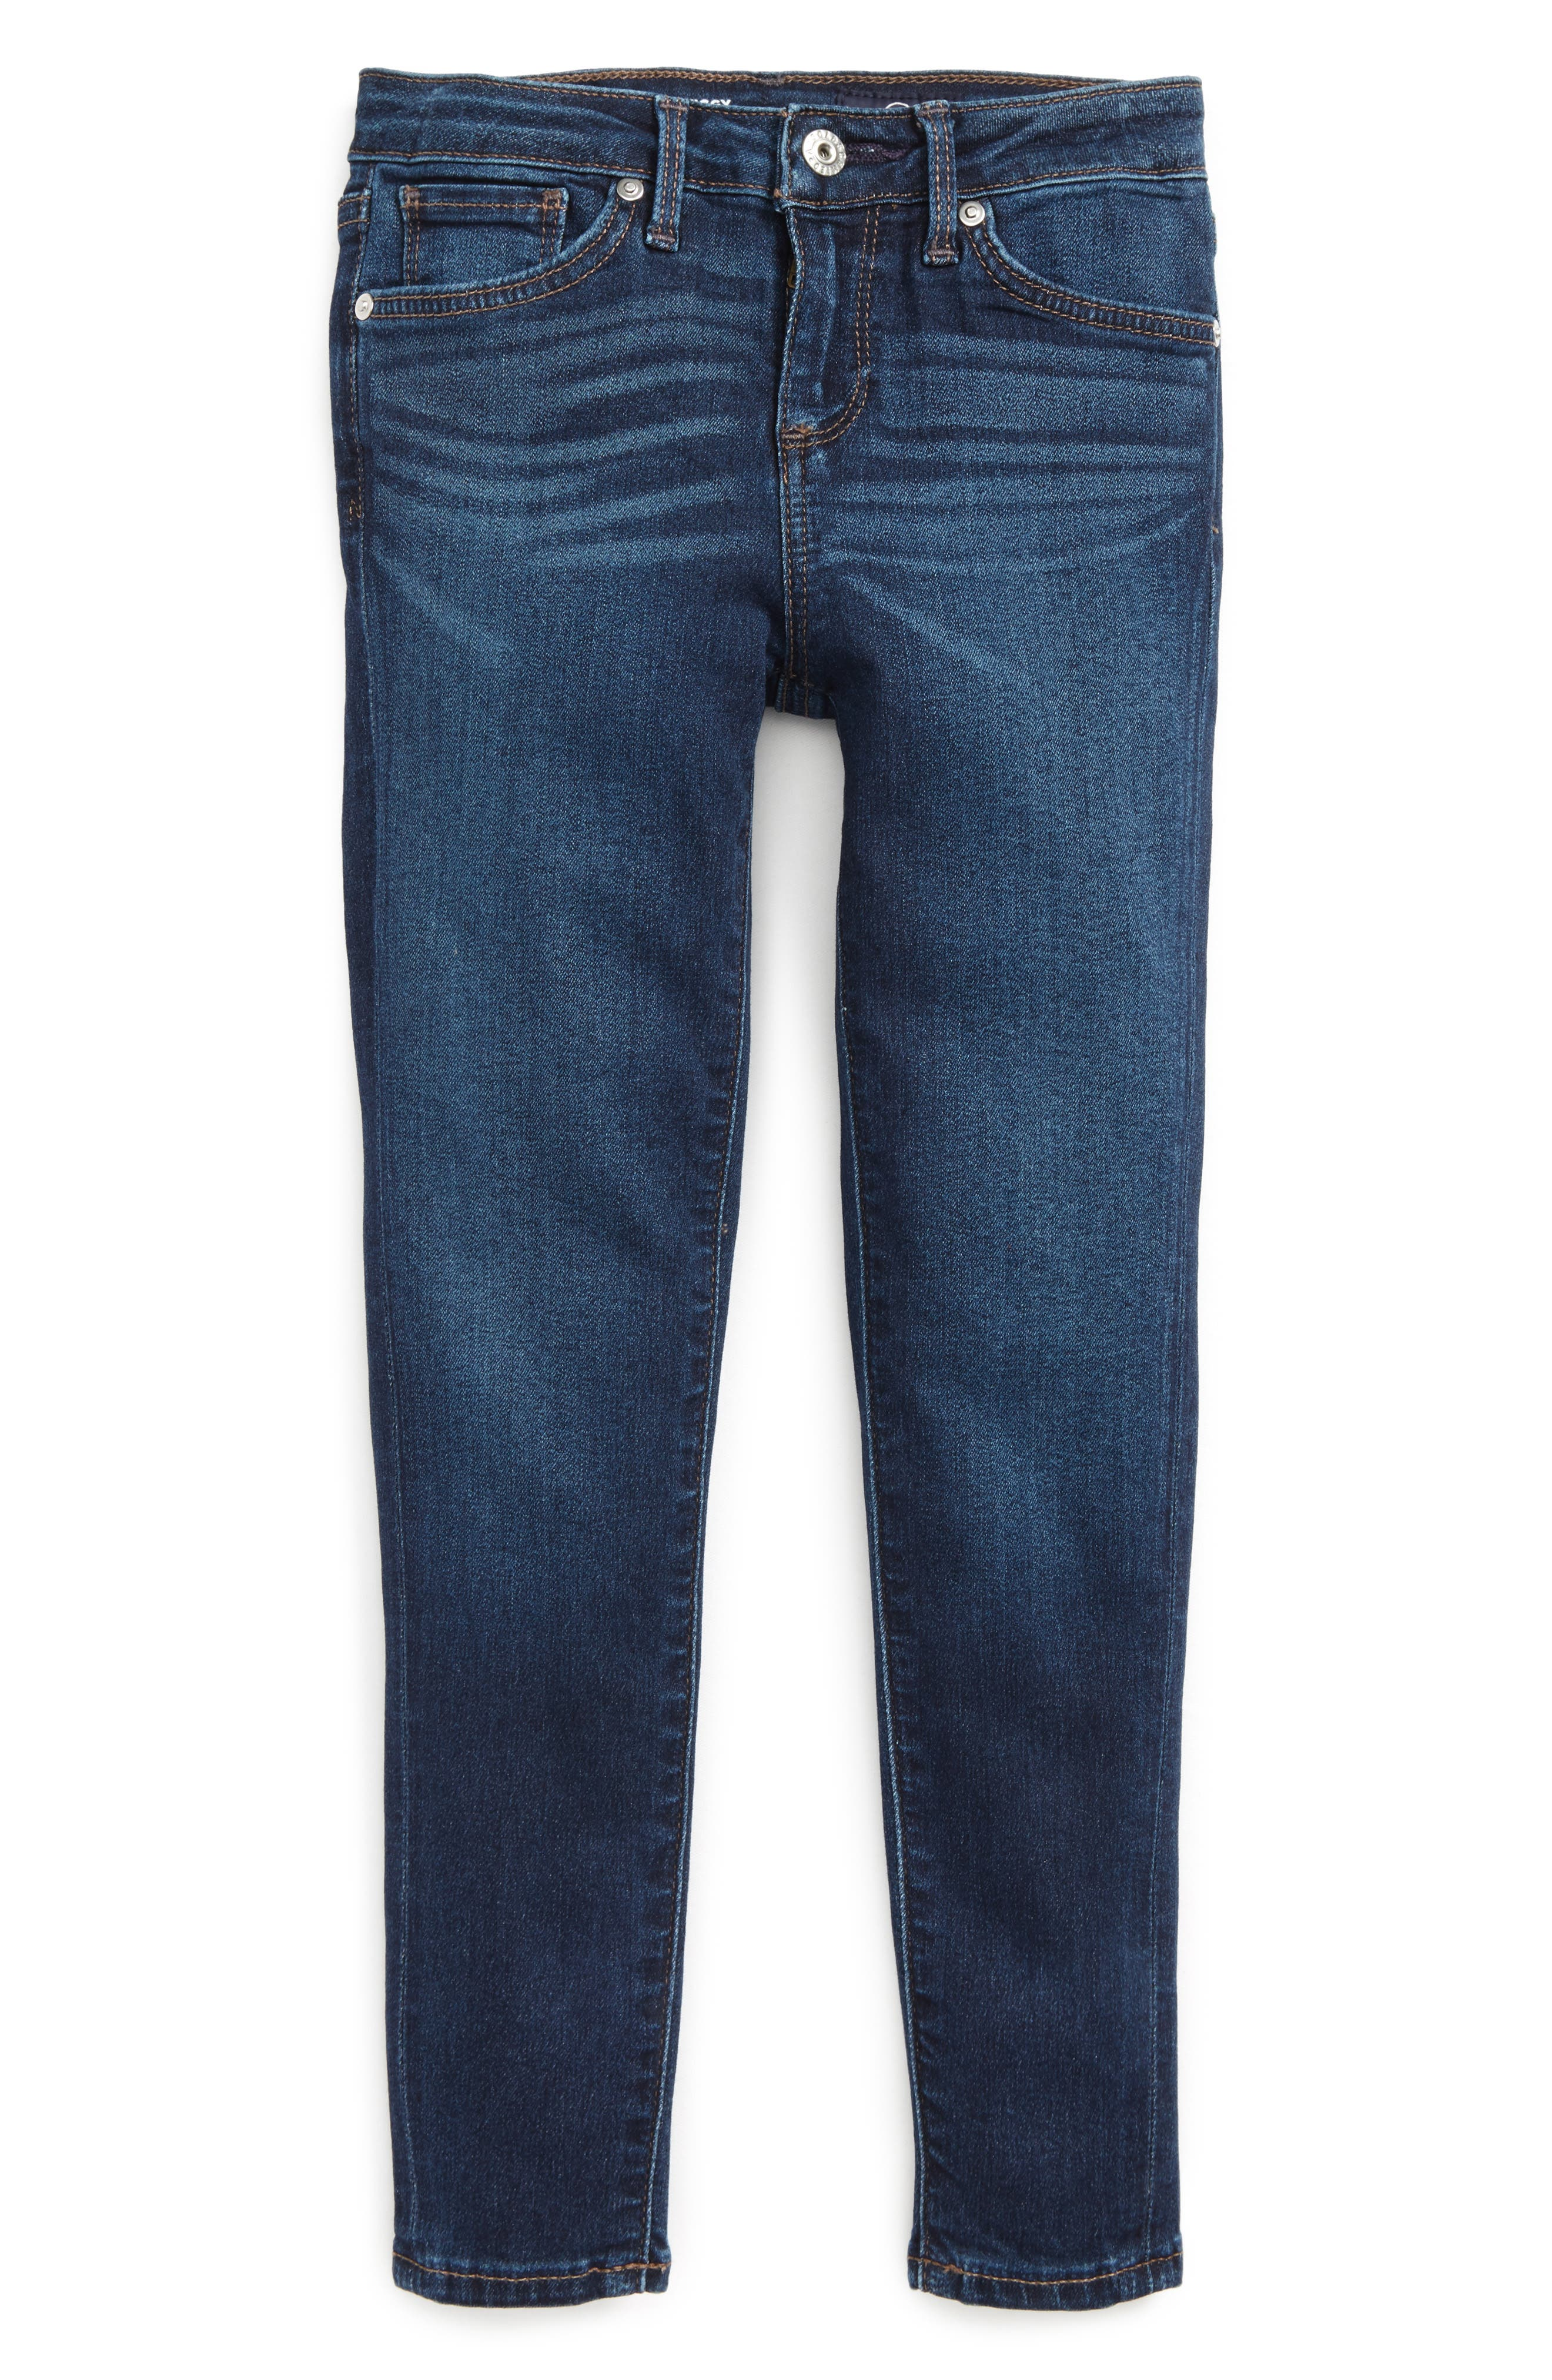 Twiggy Skinny Ankle Jeans,                         Main,                         color, 423